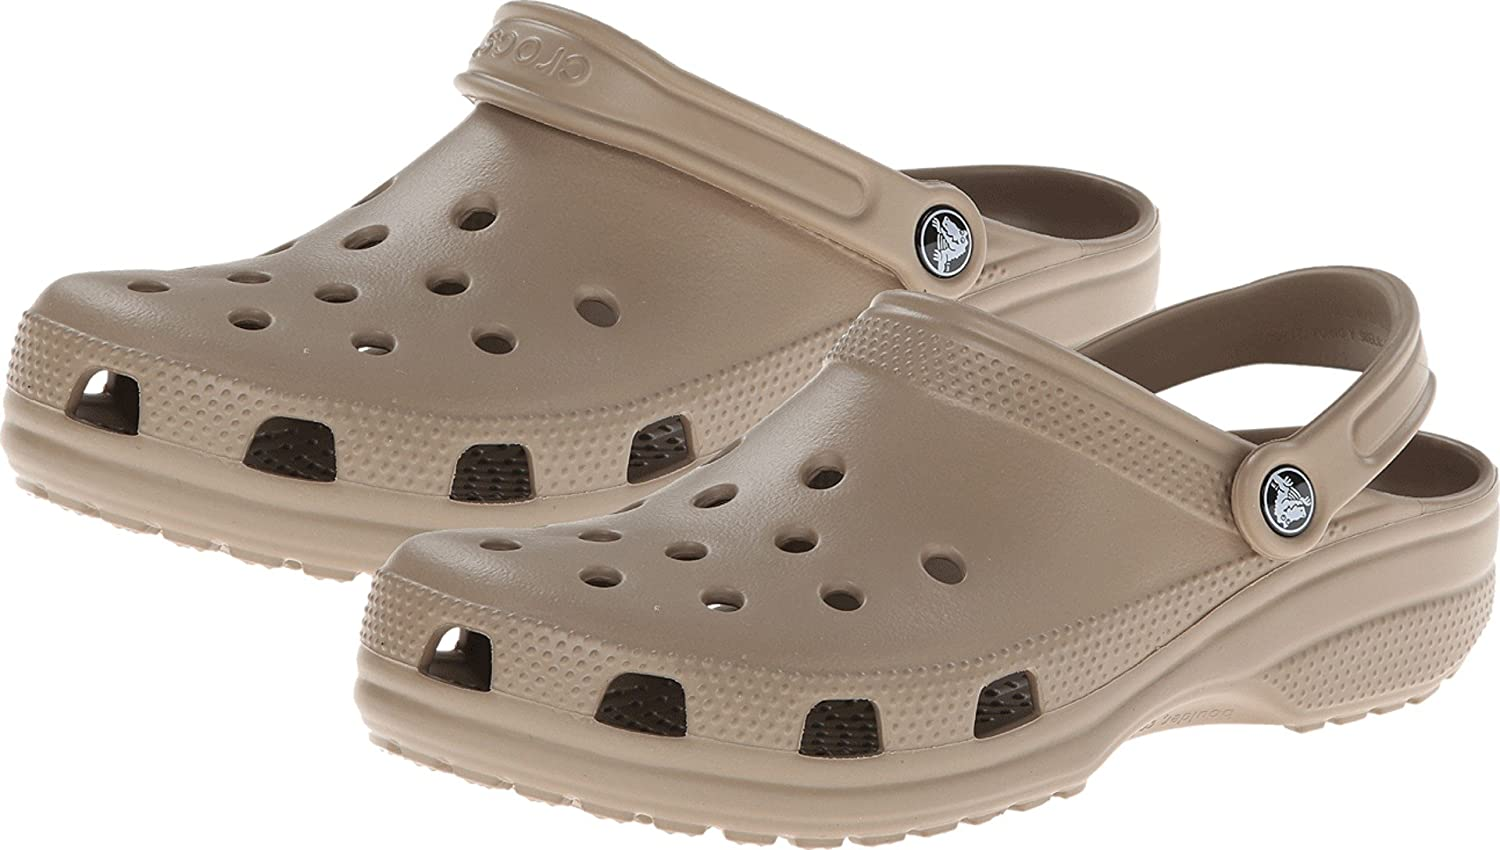 | Crocs Mens and Womens Classic Clog | Water Comfortable Slip On Shoes | Mules & Clogs